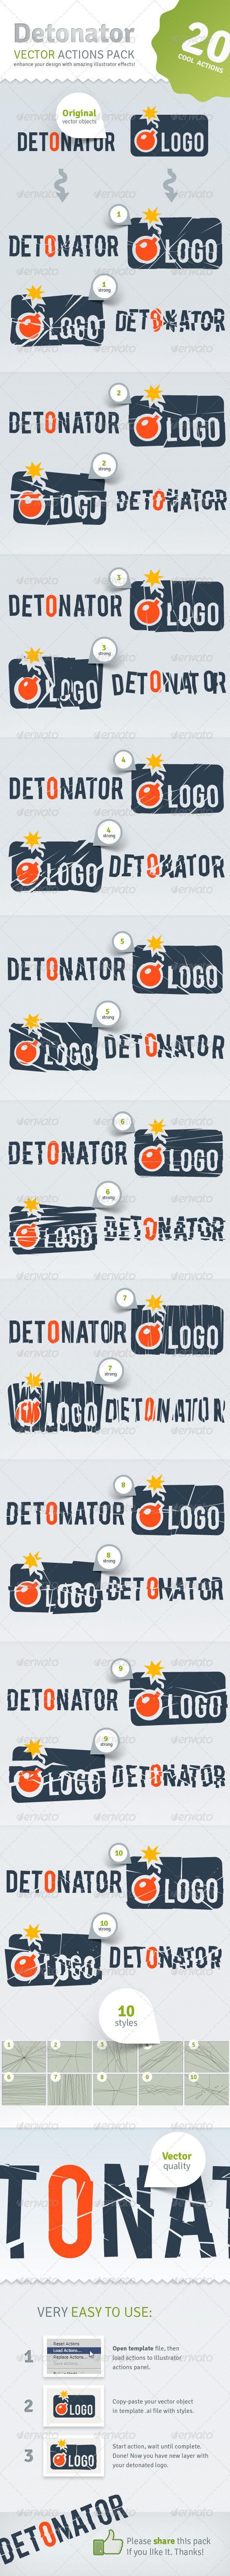 Vector Detonator - Illustrator Actions Pack - Actions Illustrator